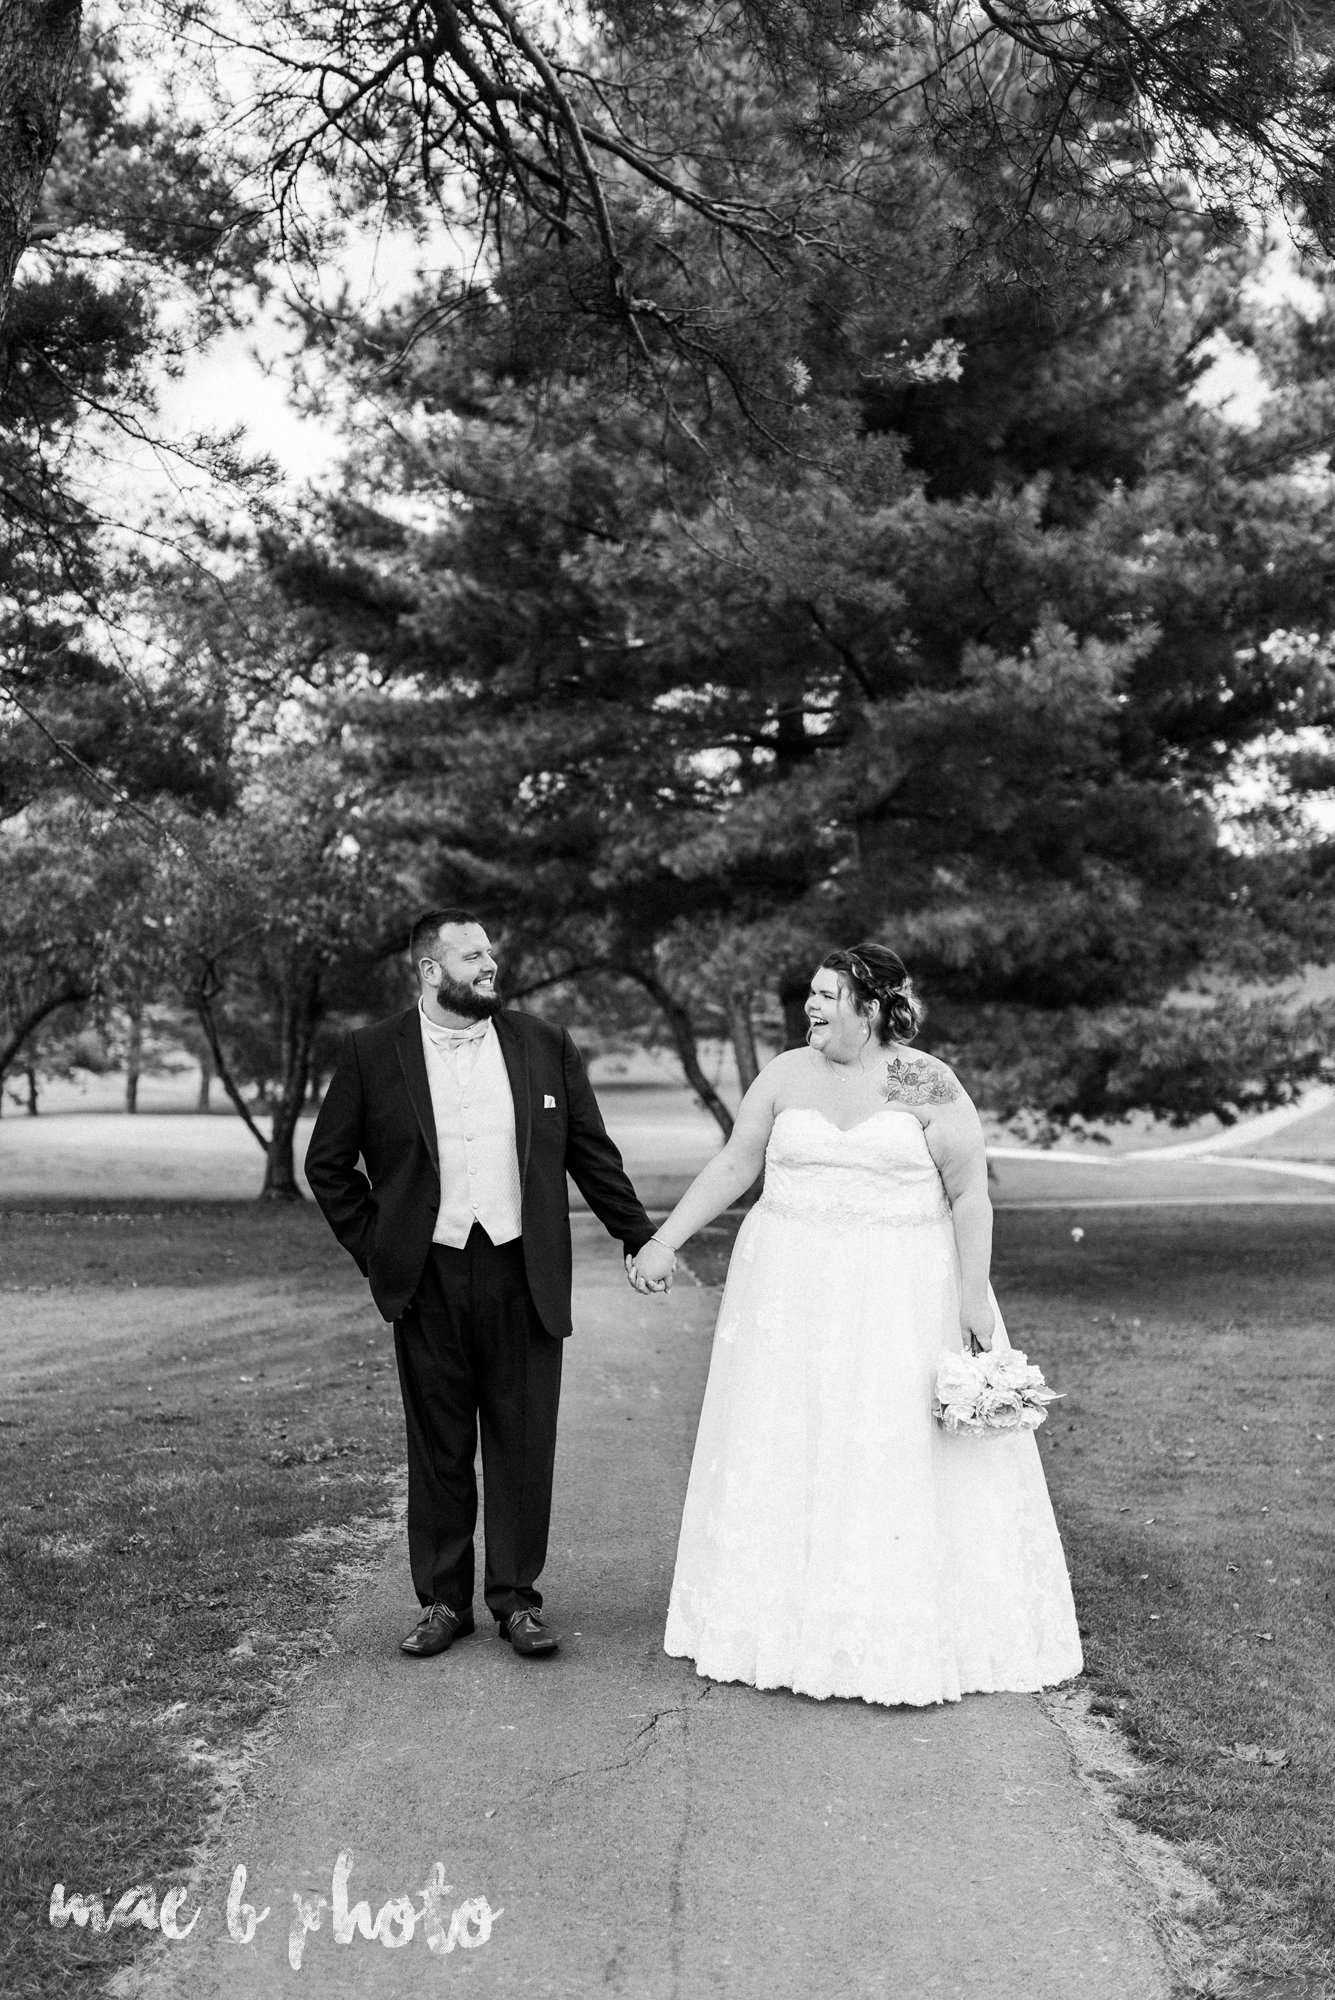 Kristina and ryan's personal vintage glam fall wedding at disalvo's station restaurant and the arnold palmer latrobe country club in latrobe, pa photographed by youngstown wedding photographer mae b photo-39.jpg